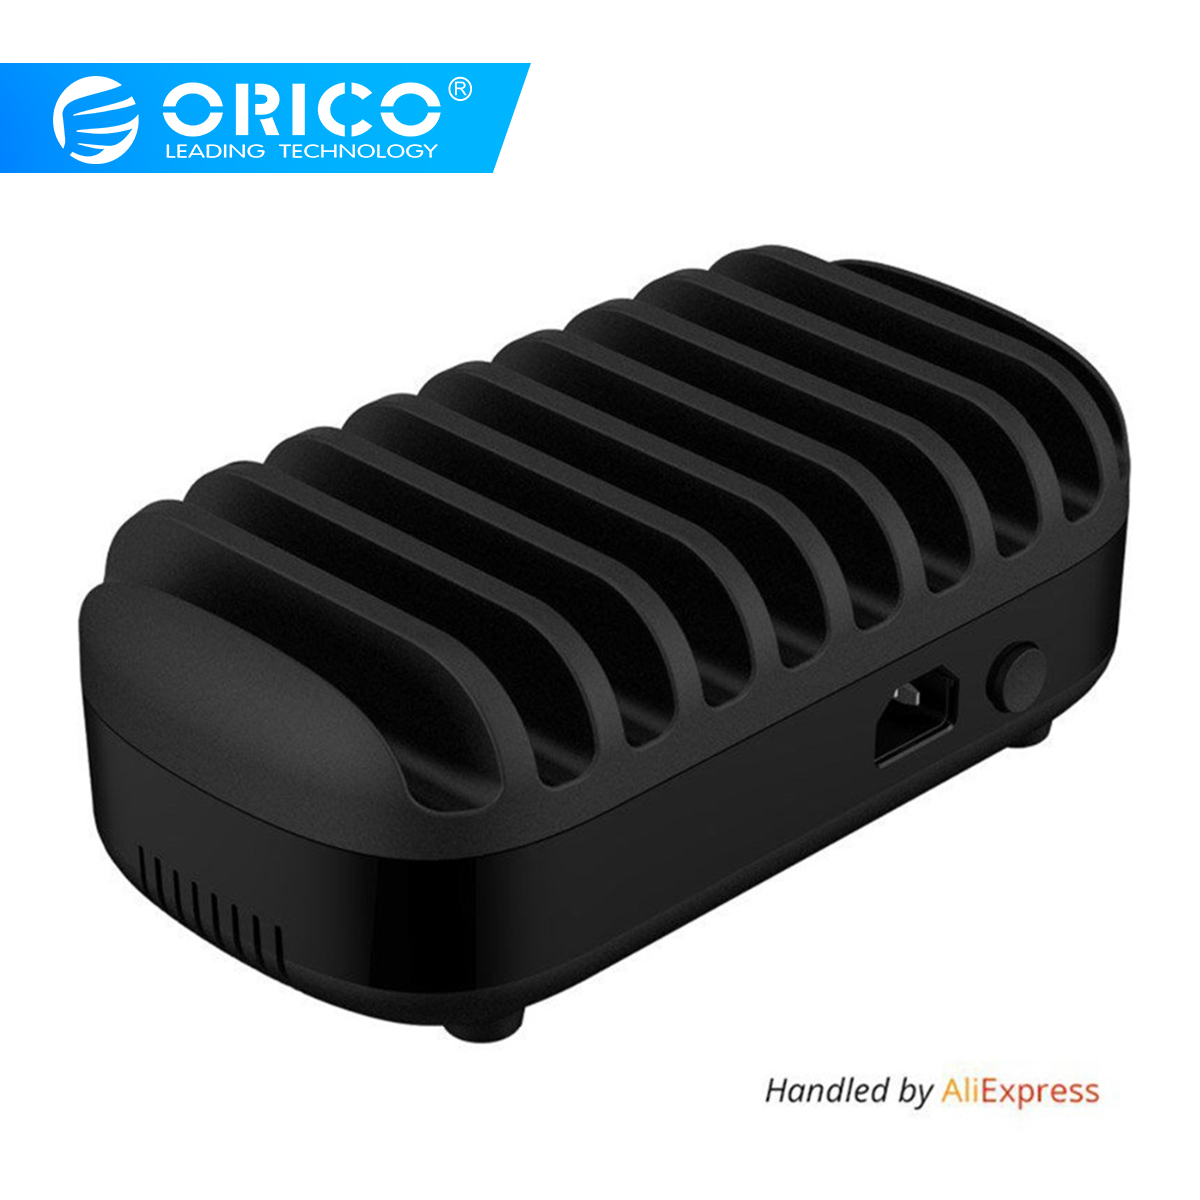 ORICO 10 Ports USB Charger Station Dock with Holder 120W 5V2.4A * 10 USB Charging for Smart Phone Tablet PC Αίτηση για οικιακό κοινό